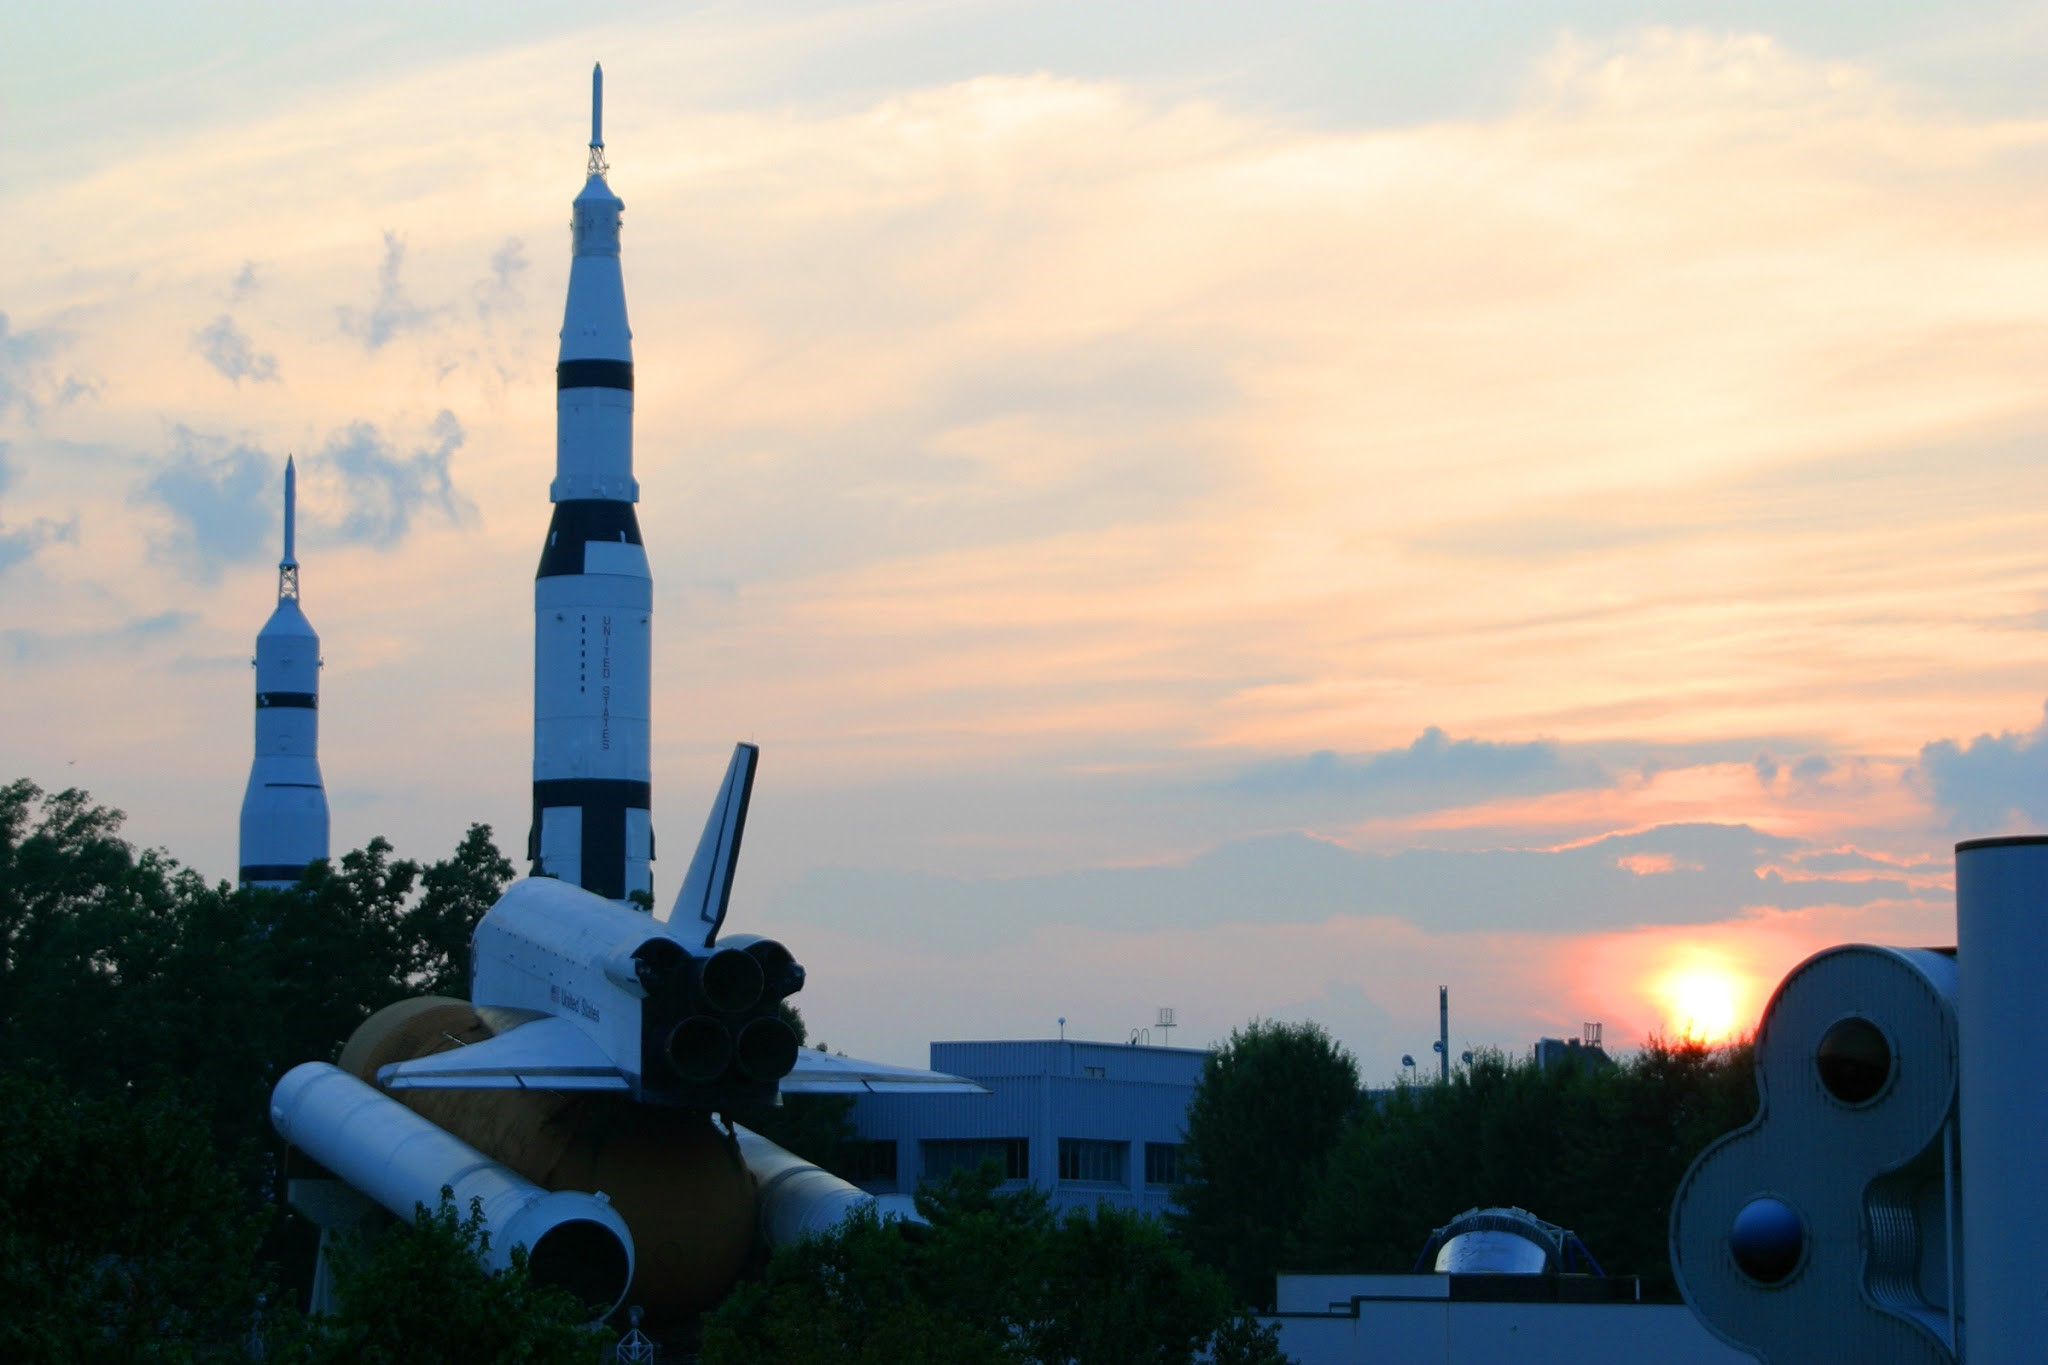 The Saturn V Moon Rocket and Space Shuttle displays at the U.S. Space & Rocket Center